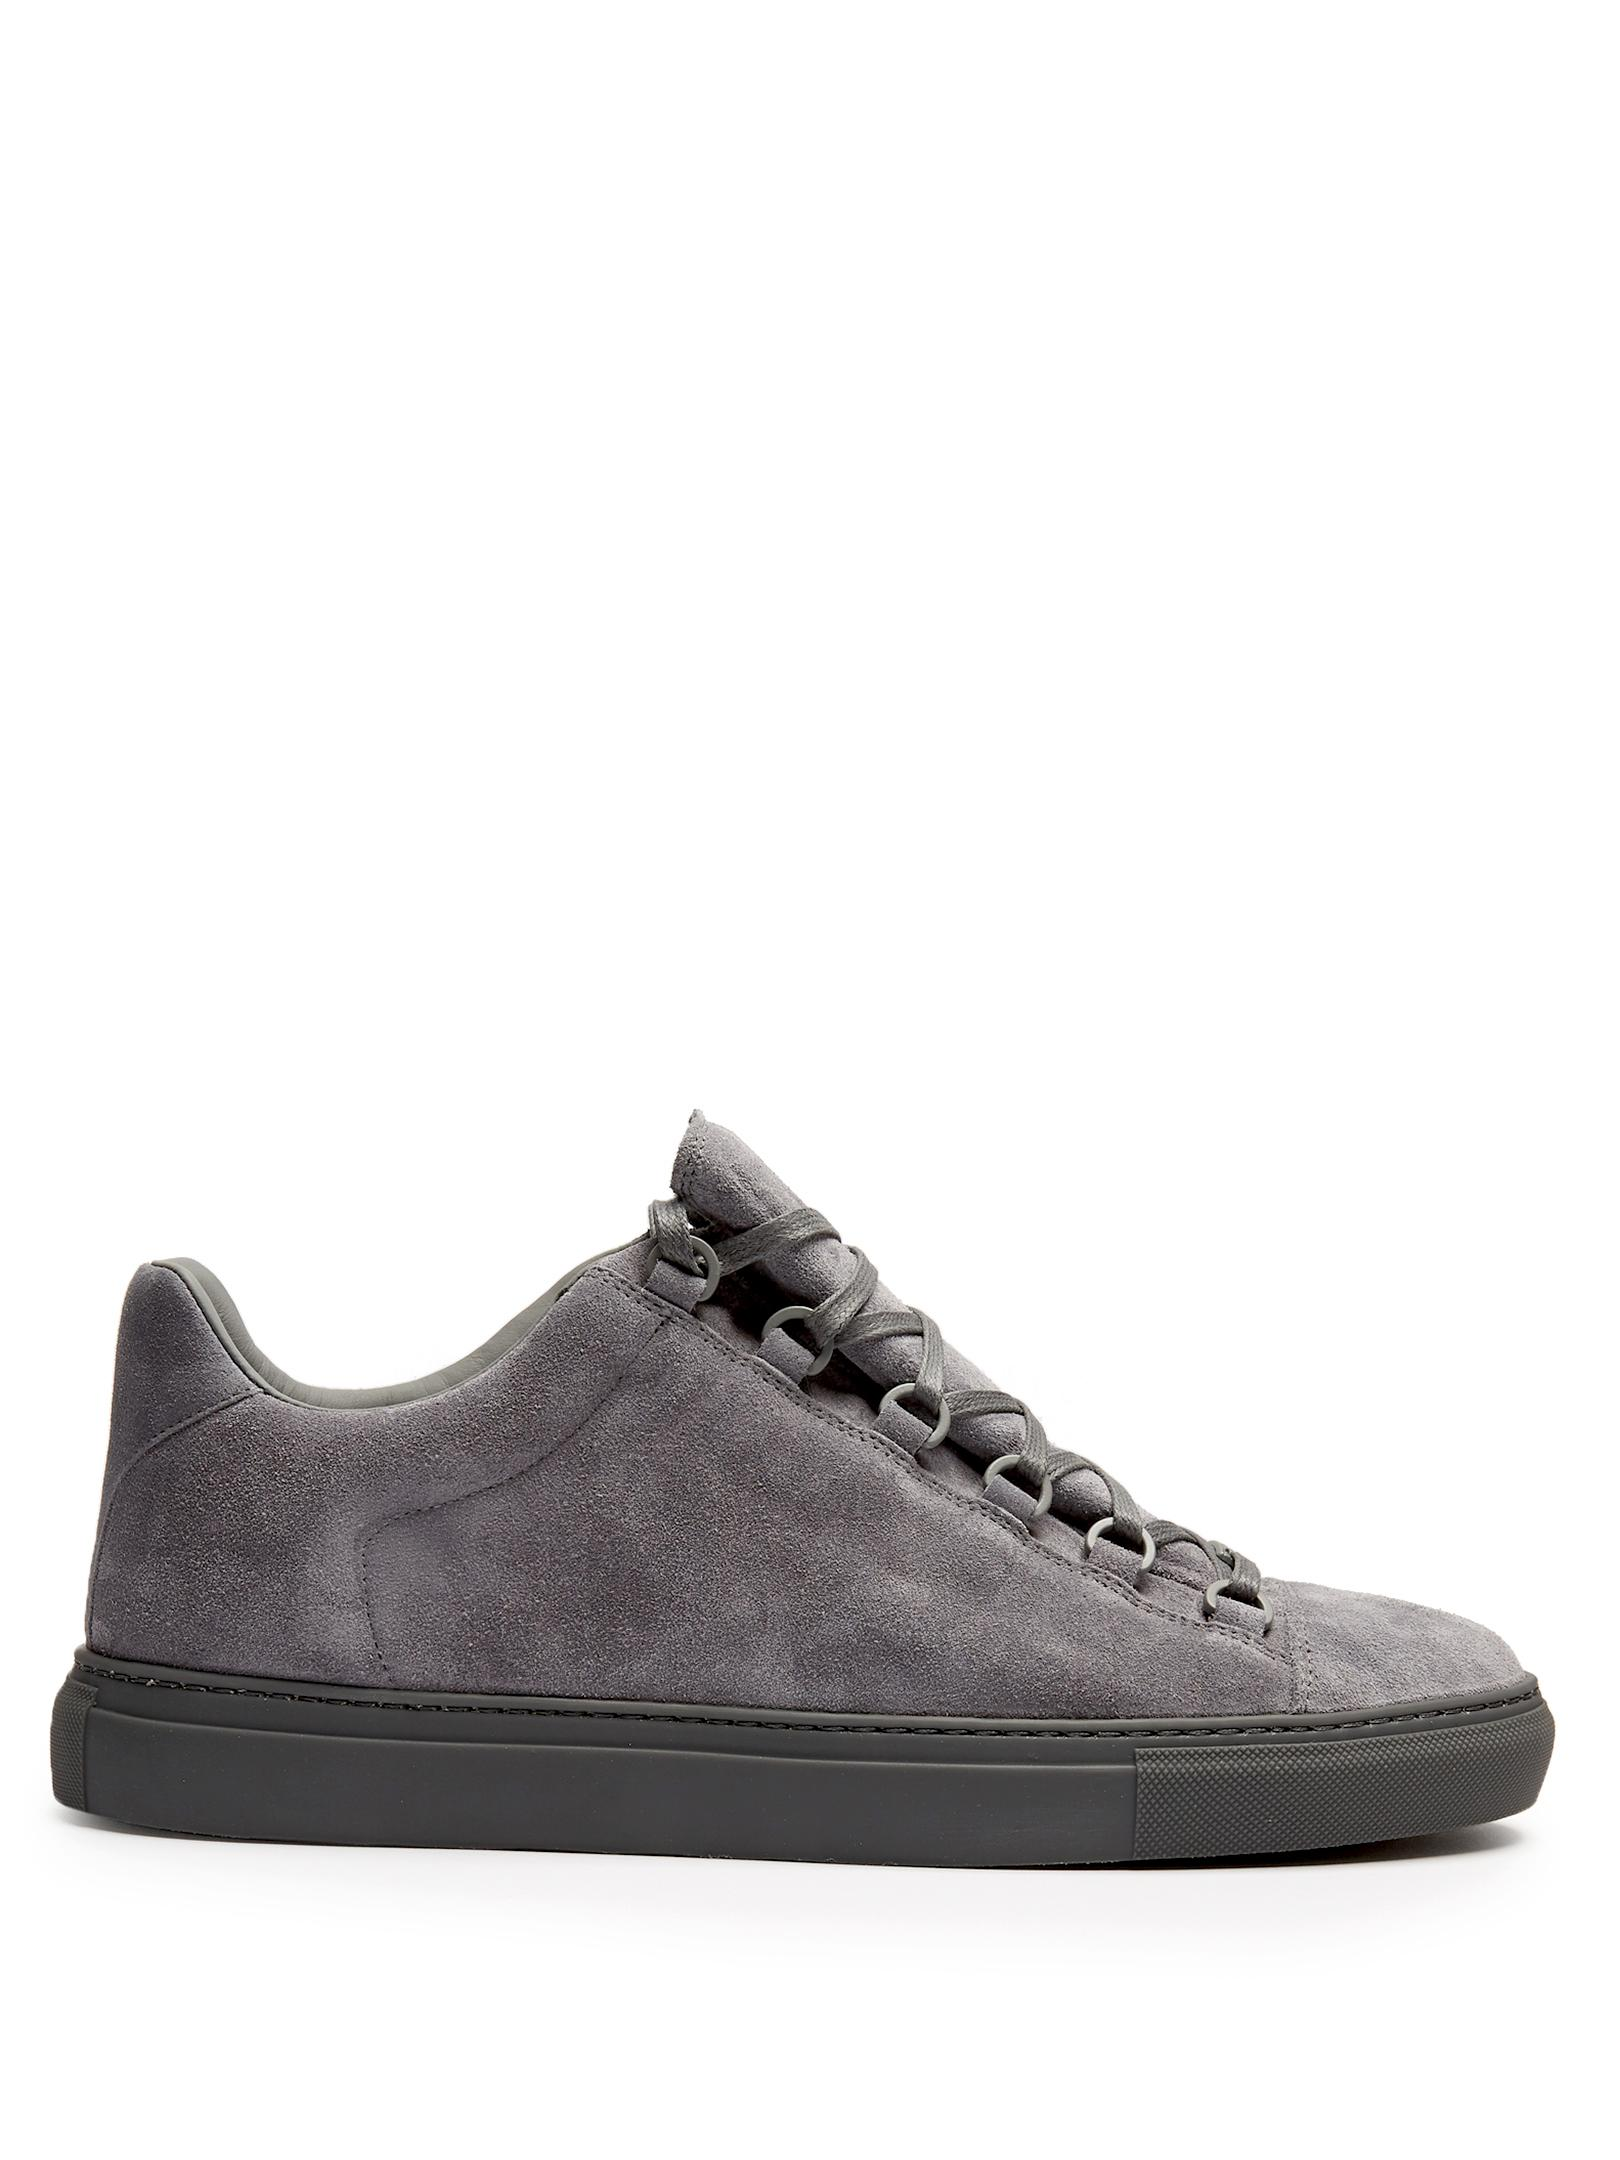 8d816b96094a2 Balenciaga Arena Low-top Suede Trainers in Gray for Men - Lyst